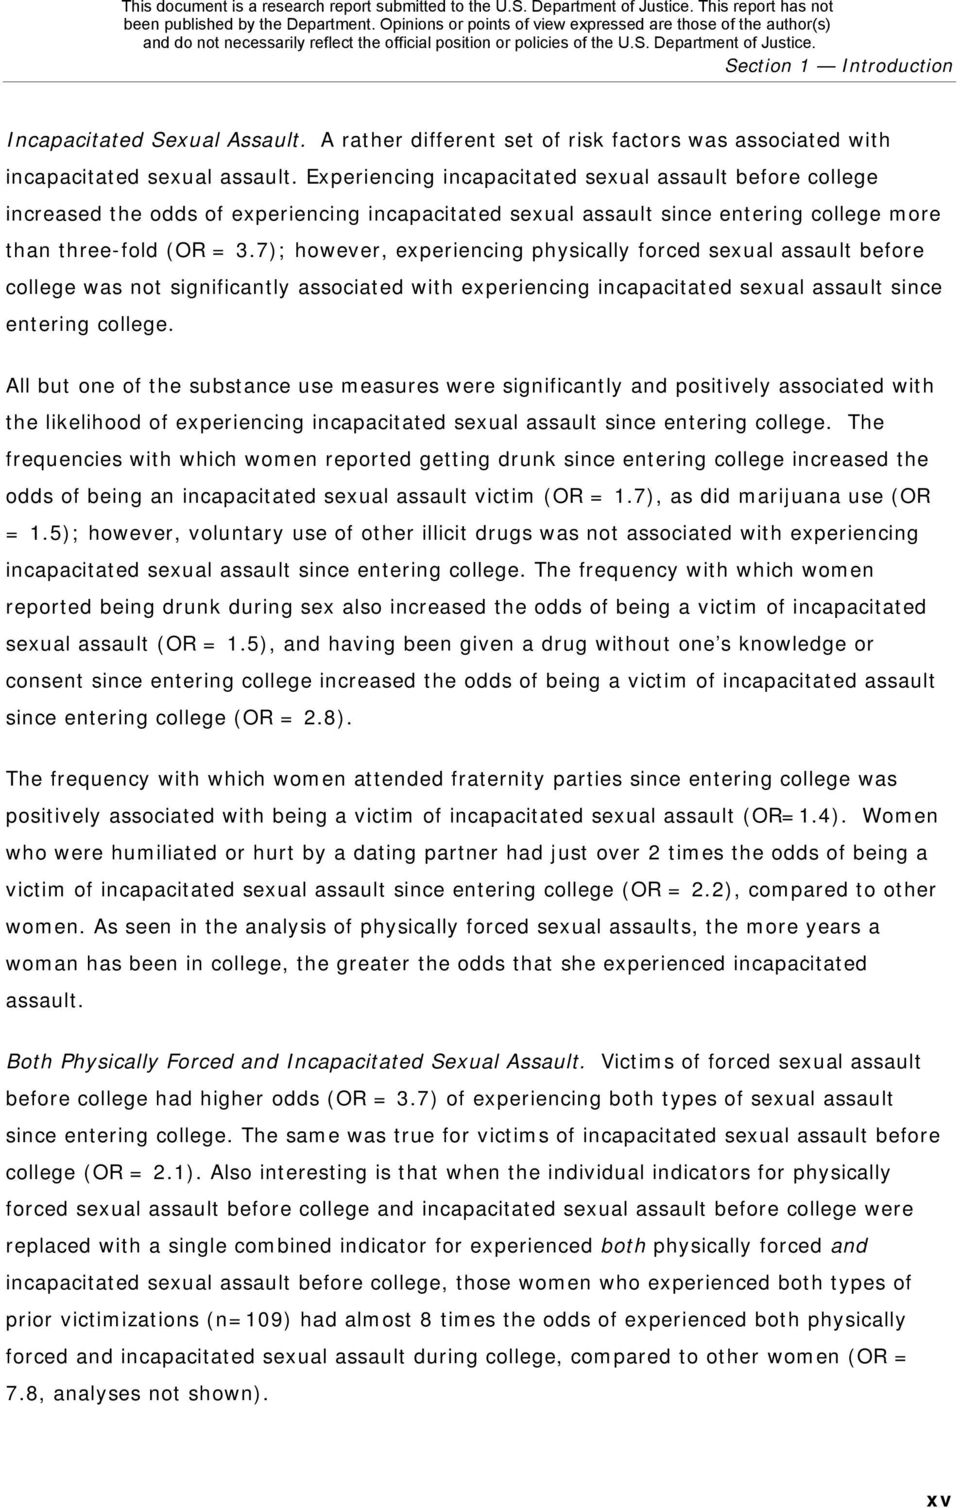 7); however, experiencing physically forced sexual assault before college was not significantly associated with experiencing incapacitated sexual assault since entering college.